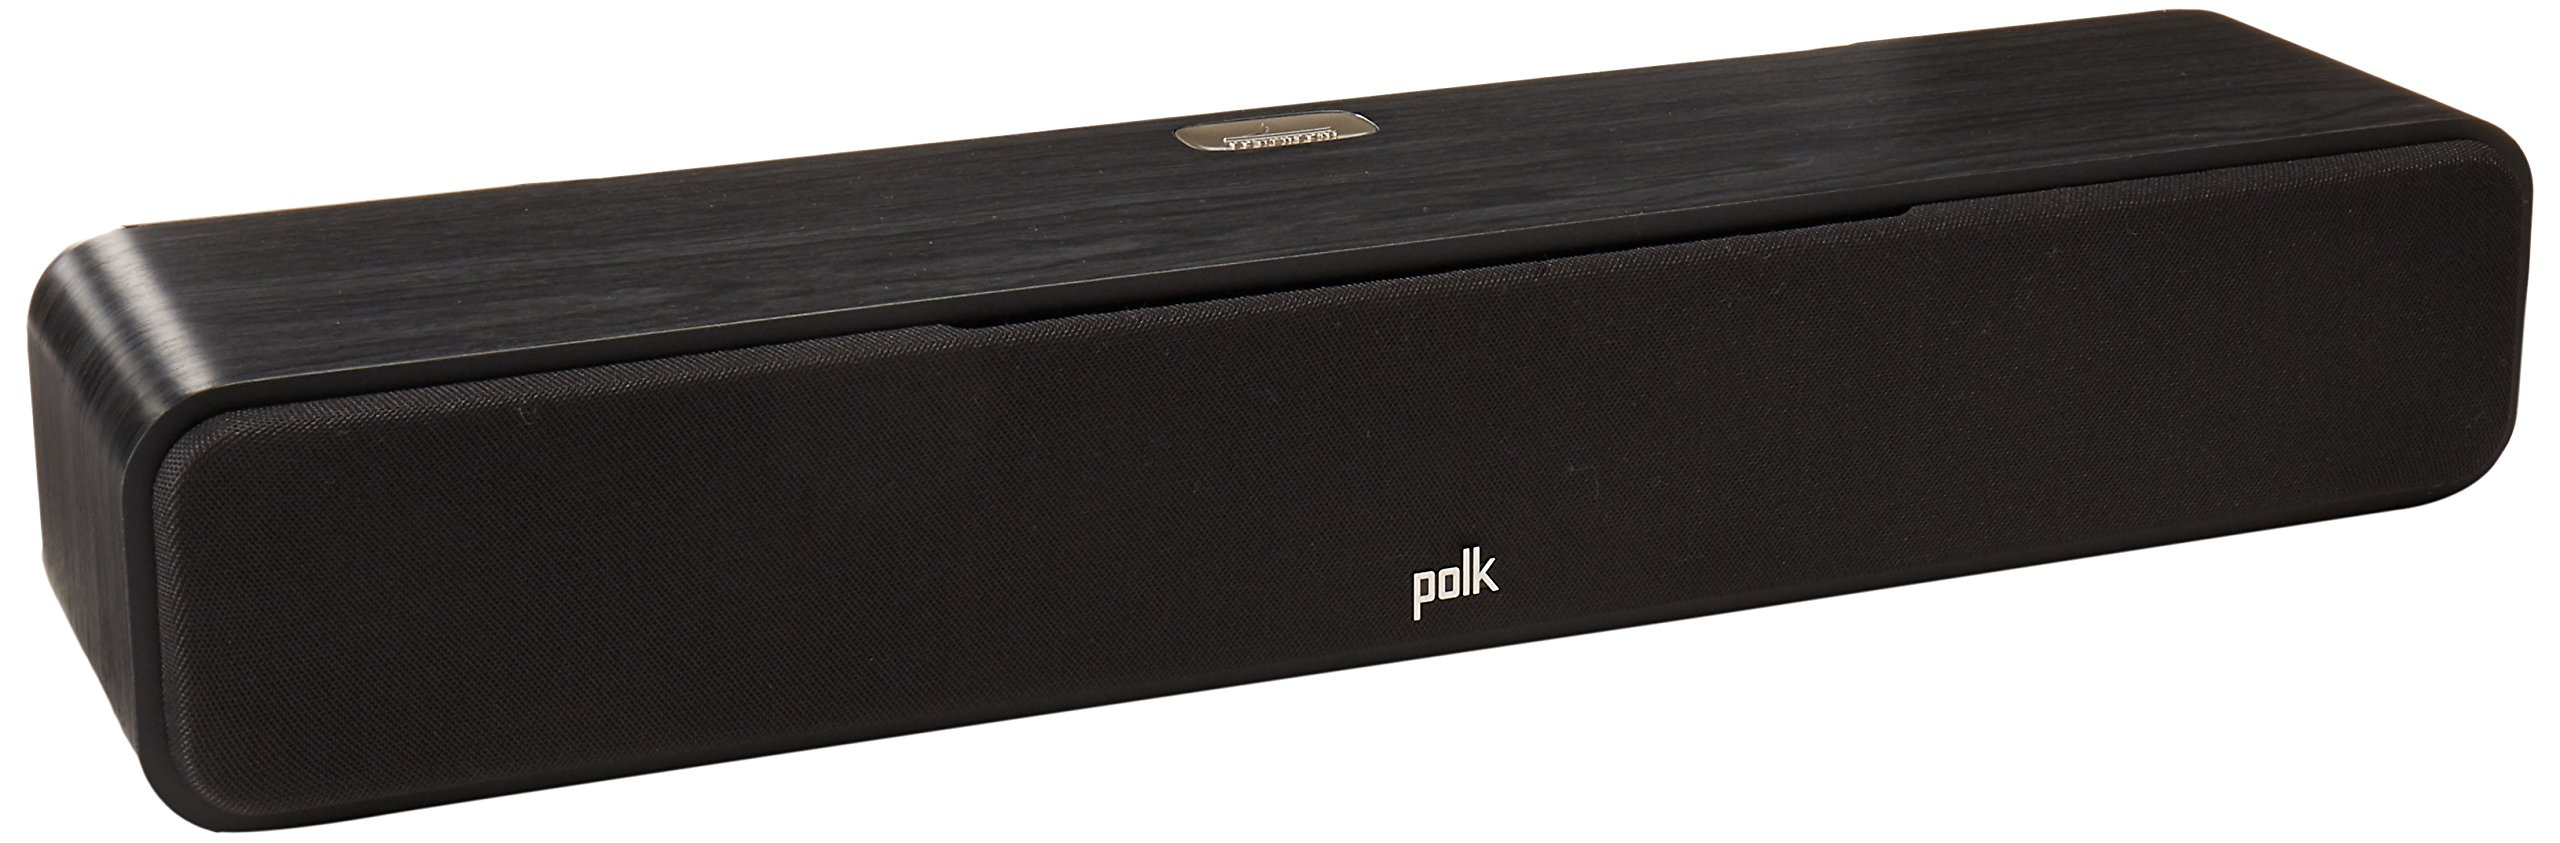 Polk Audio Signature S35 American HiFi Home Theater Slim Center Speaker by Polk Audio